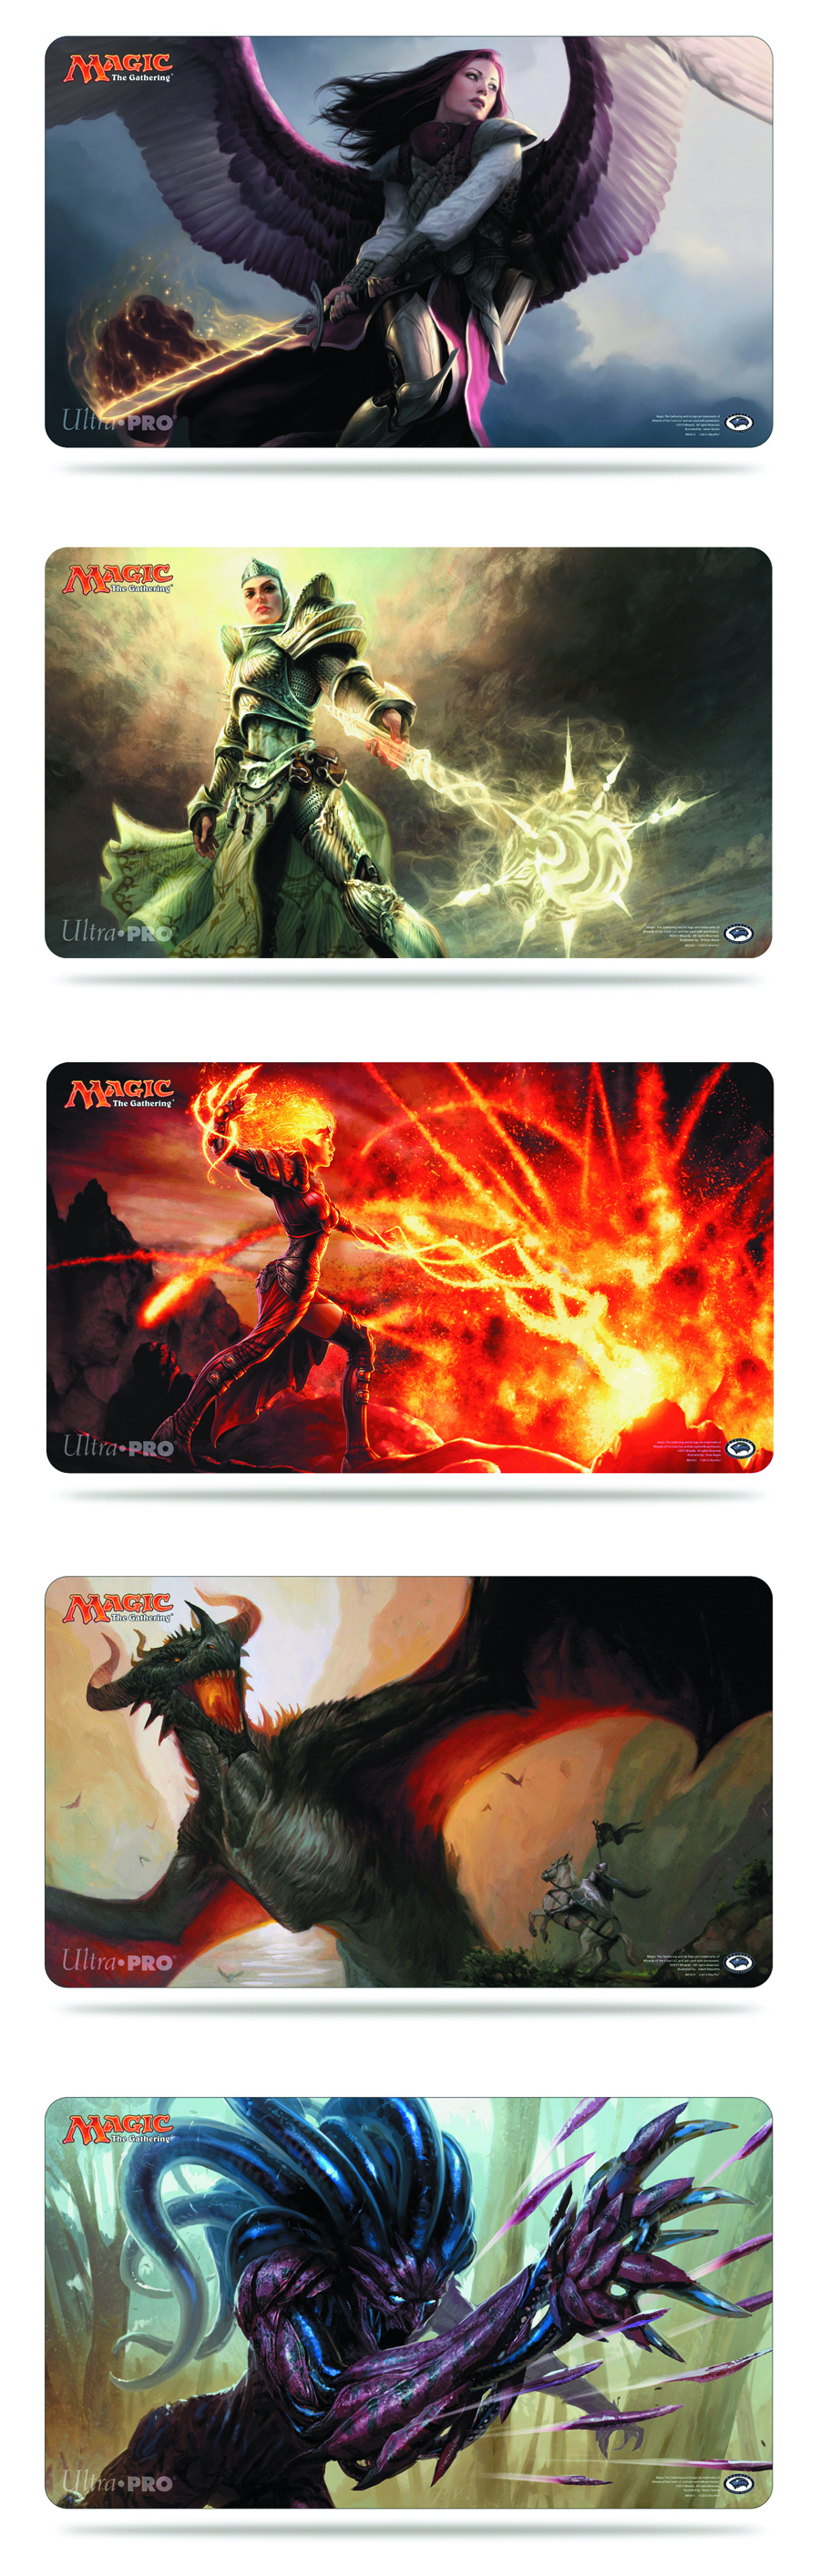 UP MTG 2014 PLAYMAT 5 12 PC CASE